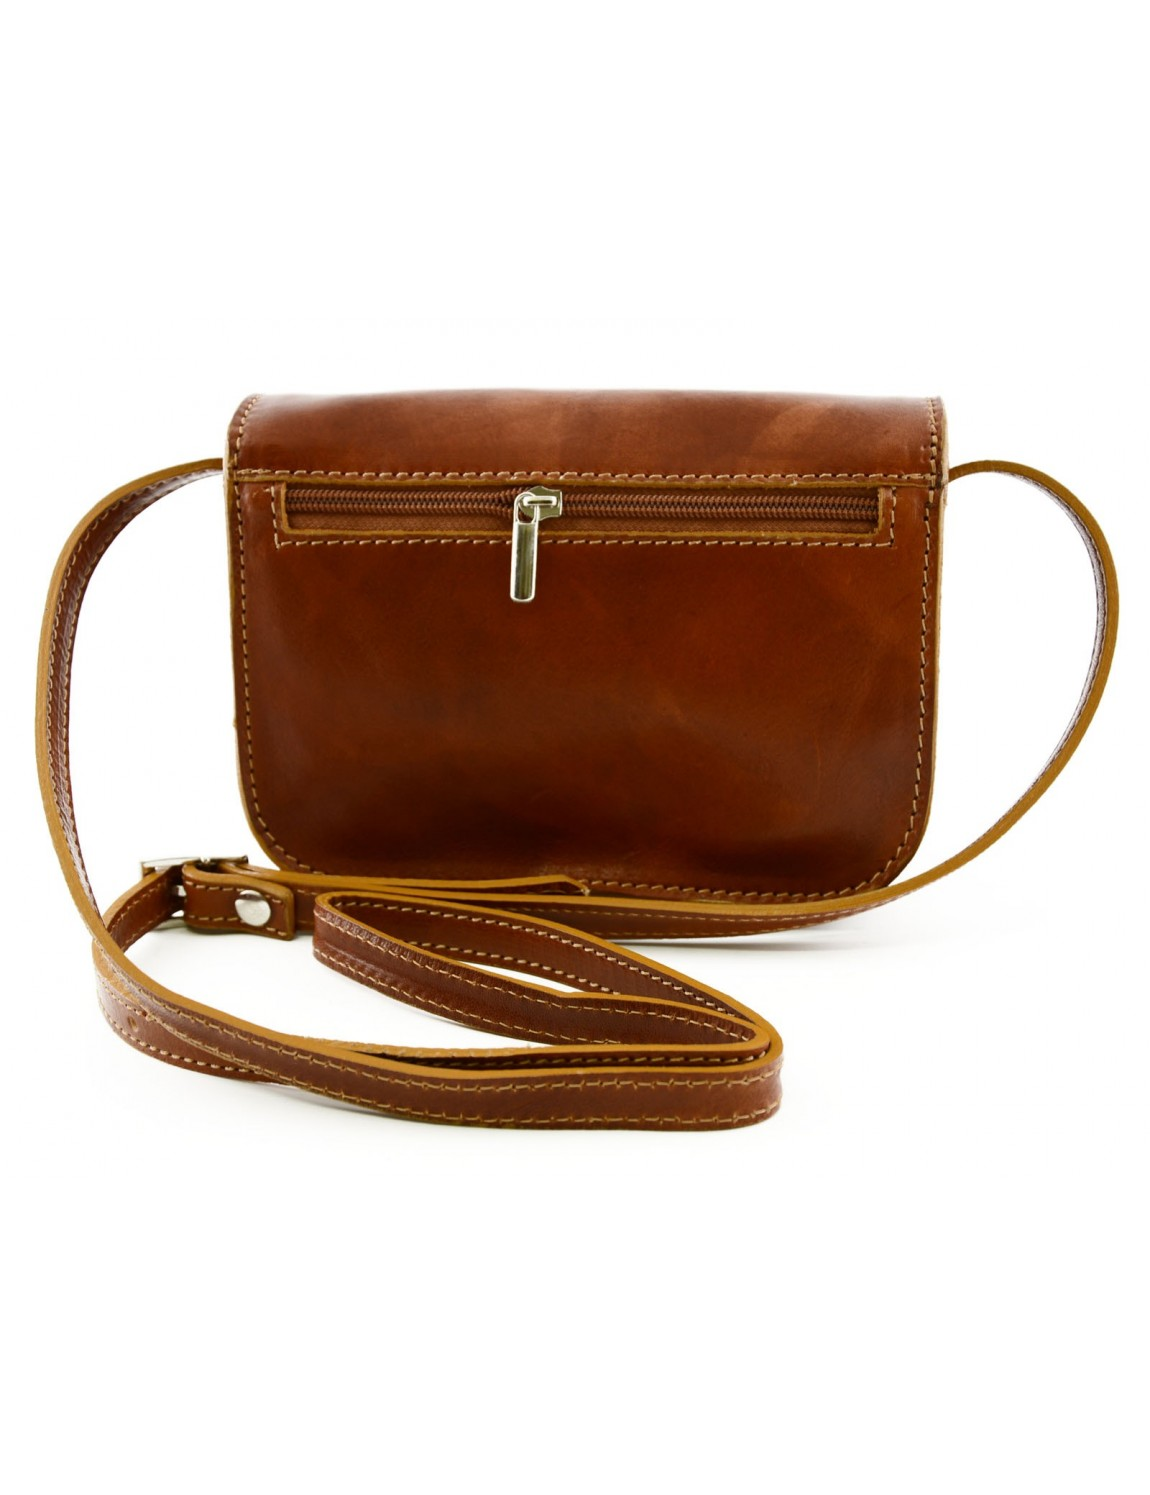 Mini Woman Crossbody Bag In Genuine Leather With 3 Compartments Eliana